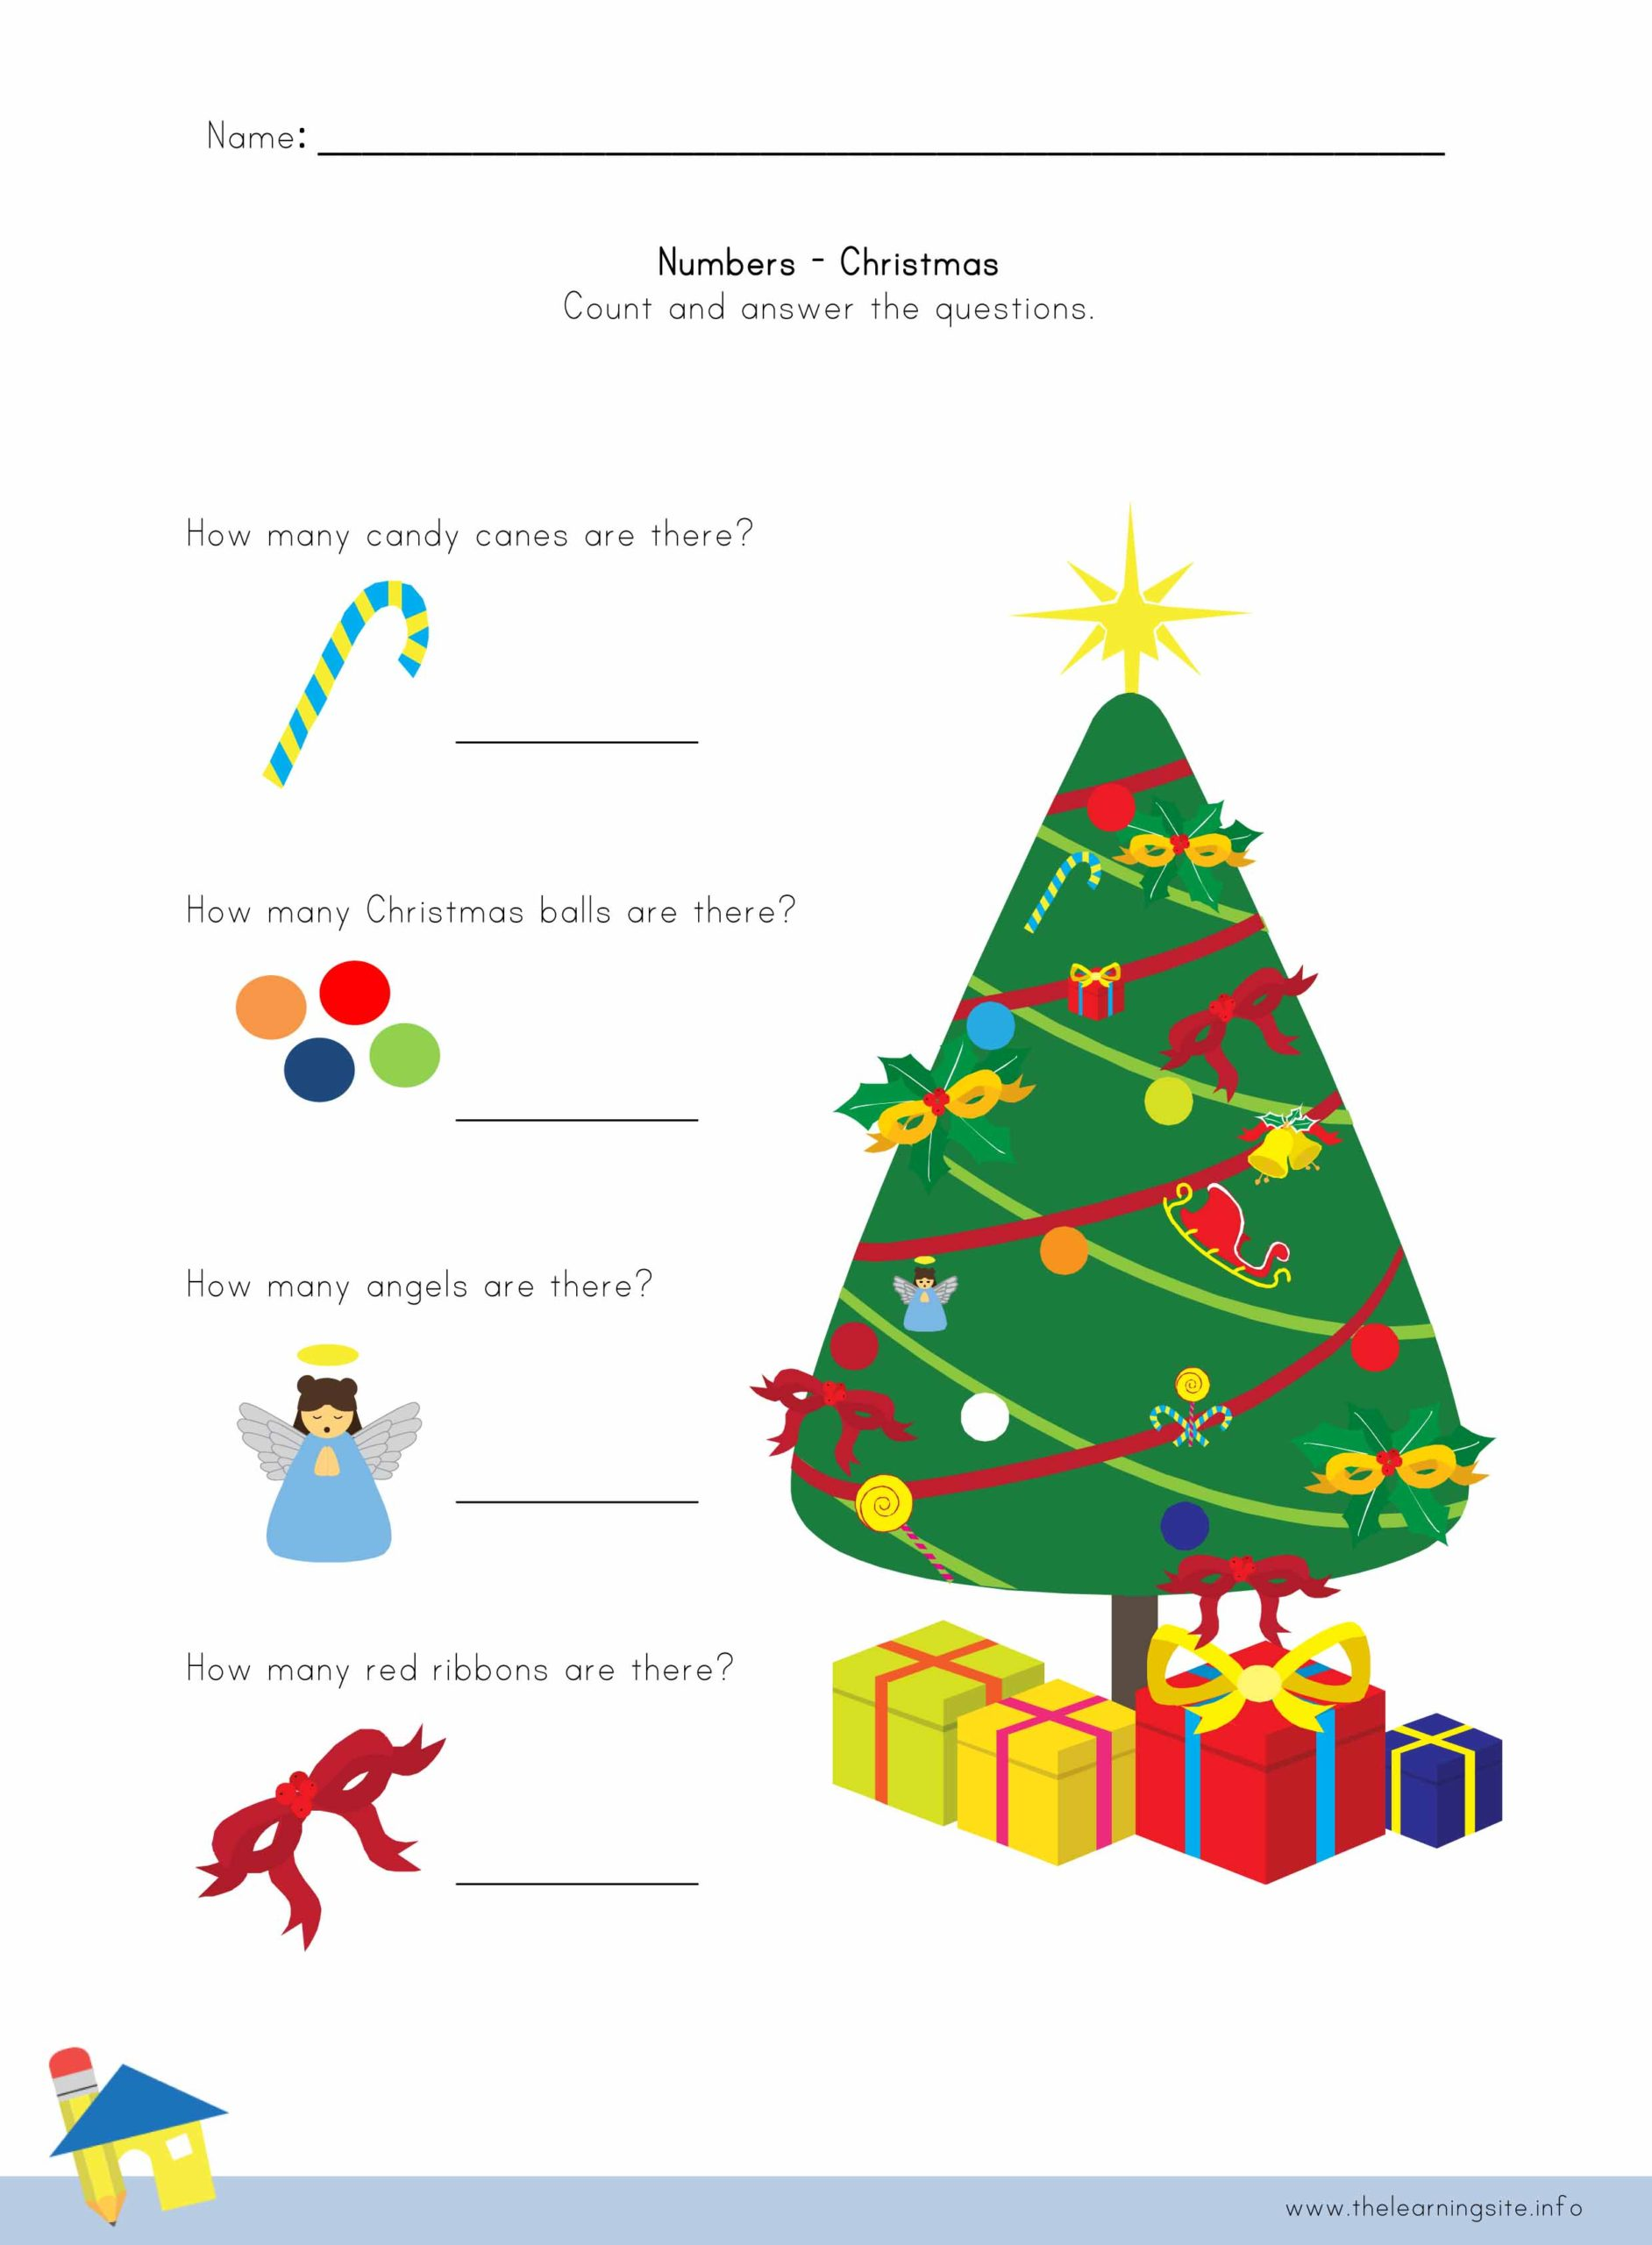 Christmas Number Worksheet 4 The Learning Site